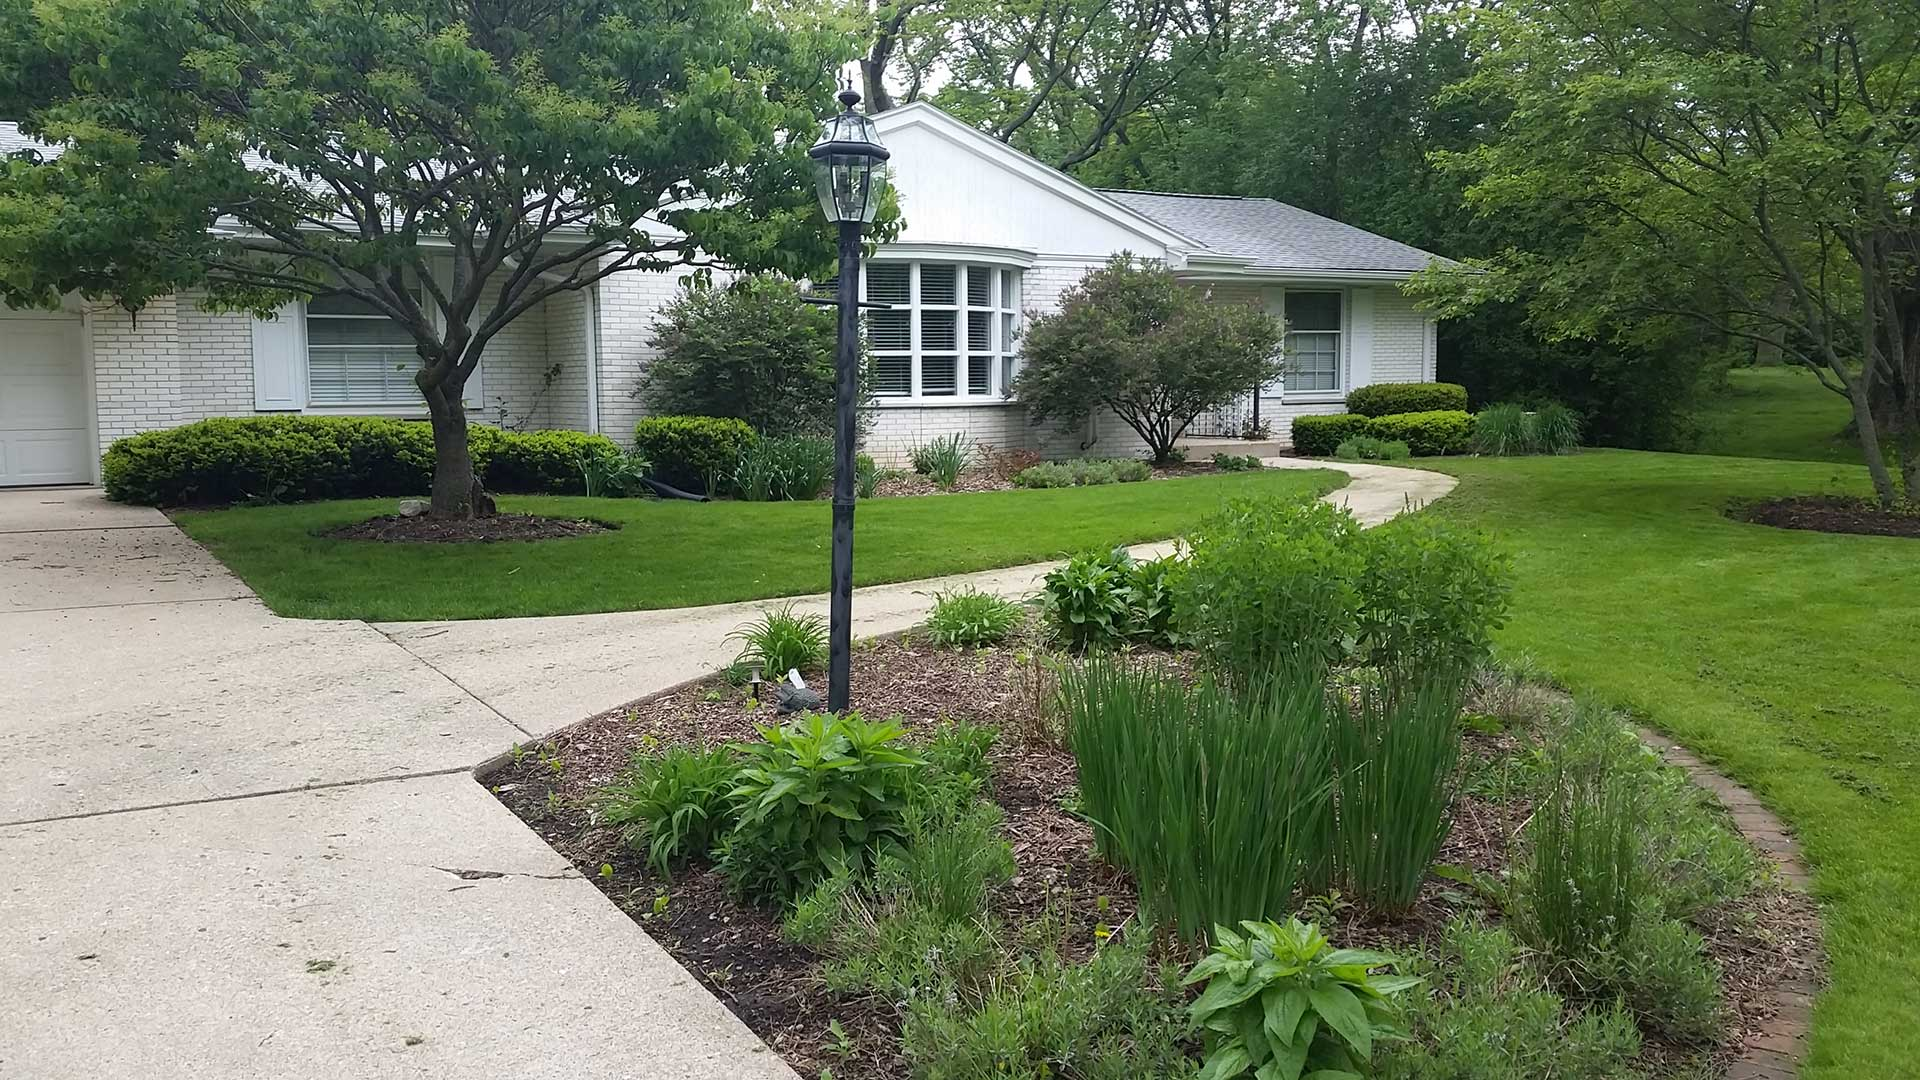 Delafield, WI home with regular landscape maintenance services.